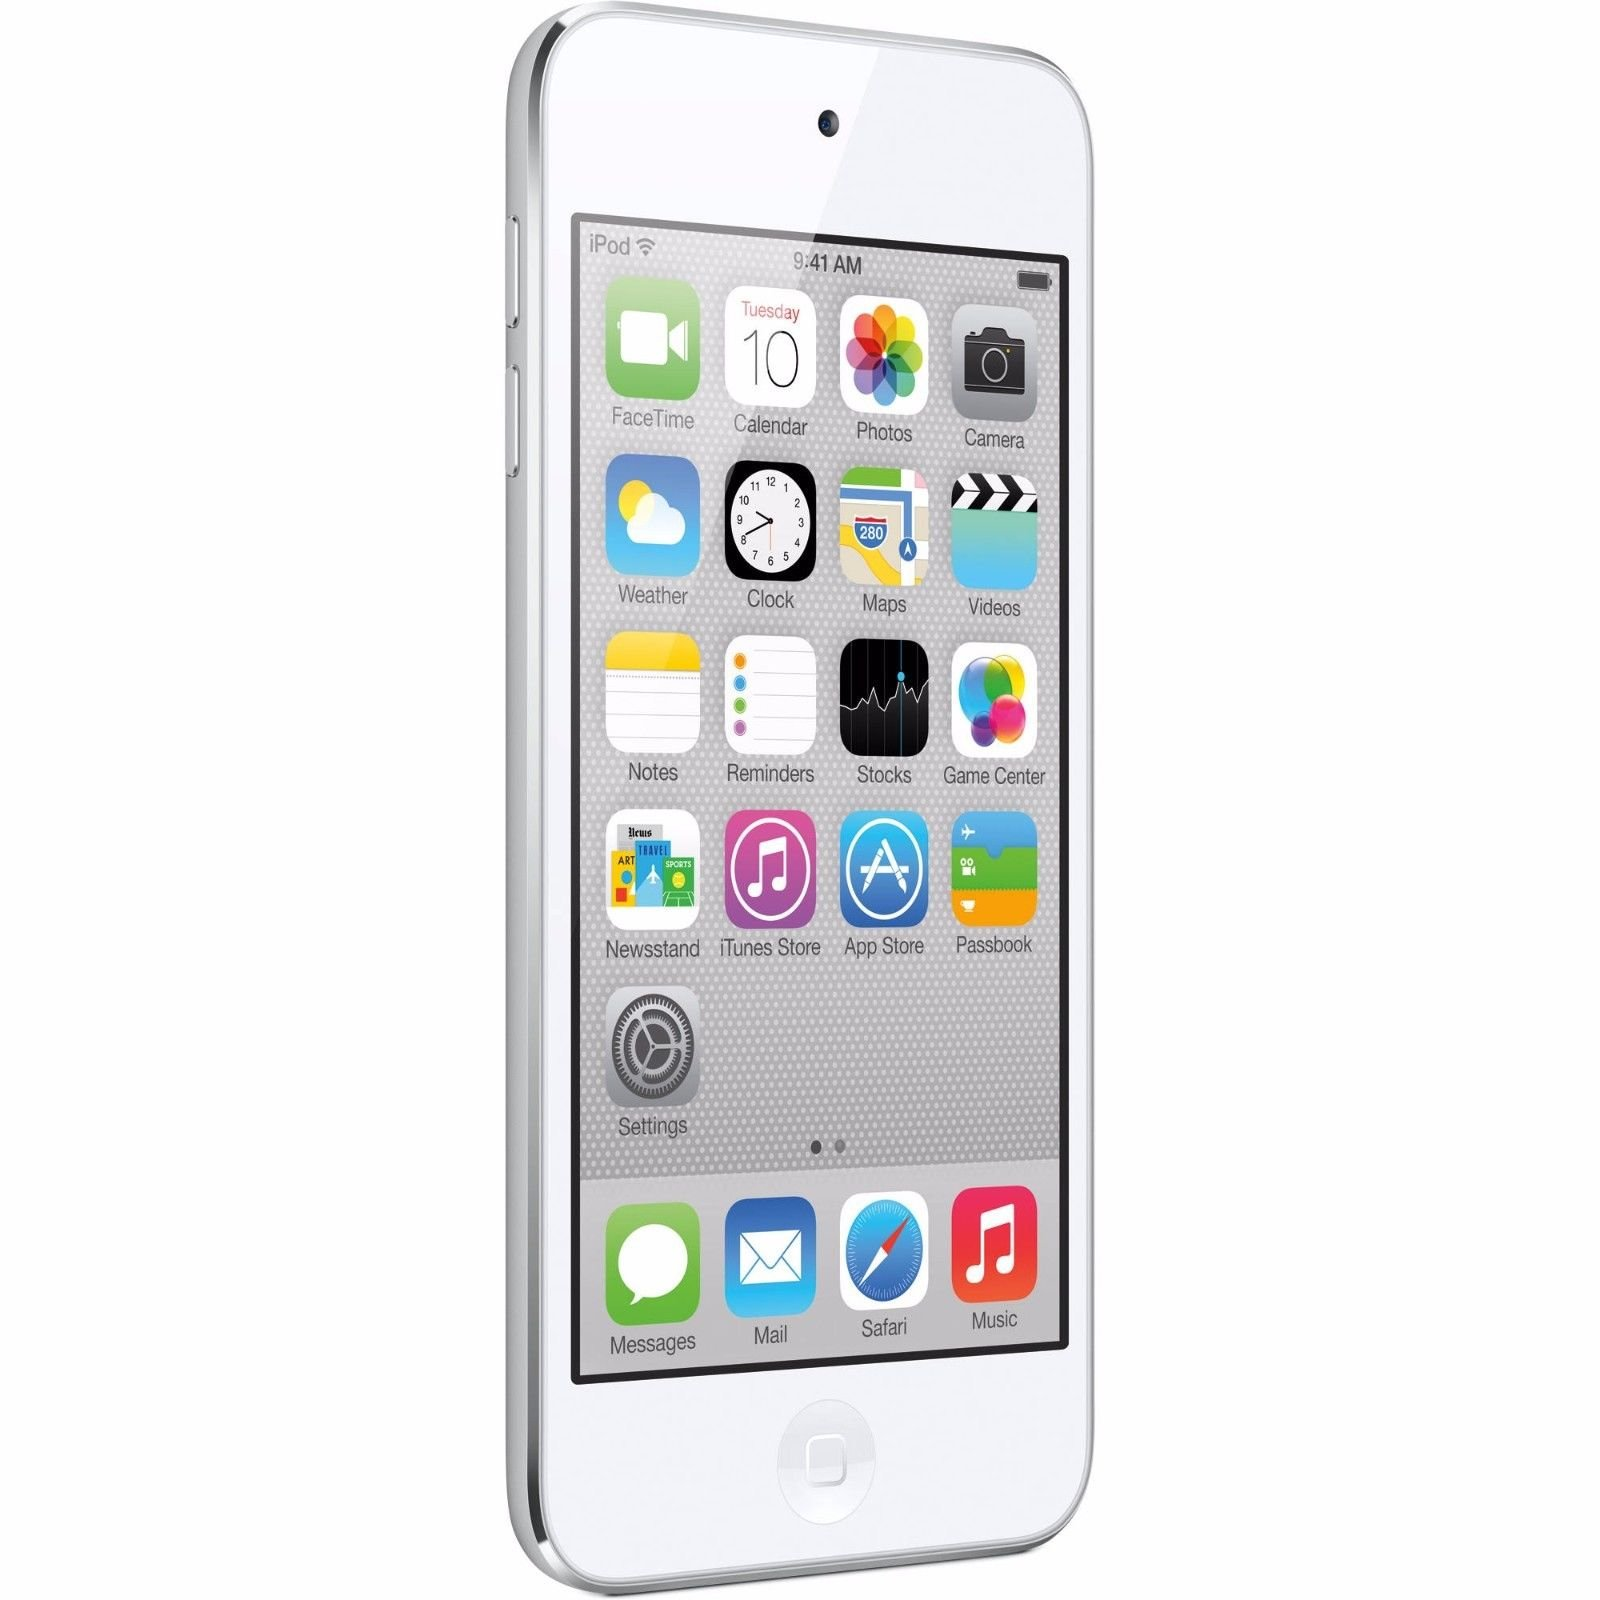 Apple-ipod-Touch-5th-GEN-16GB-32GB-64GB-MP3-Player-Dual-amp-Single-Camera-New-other